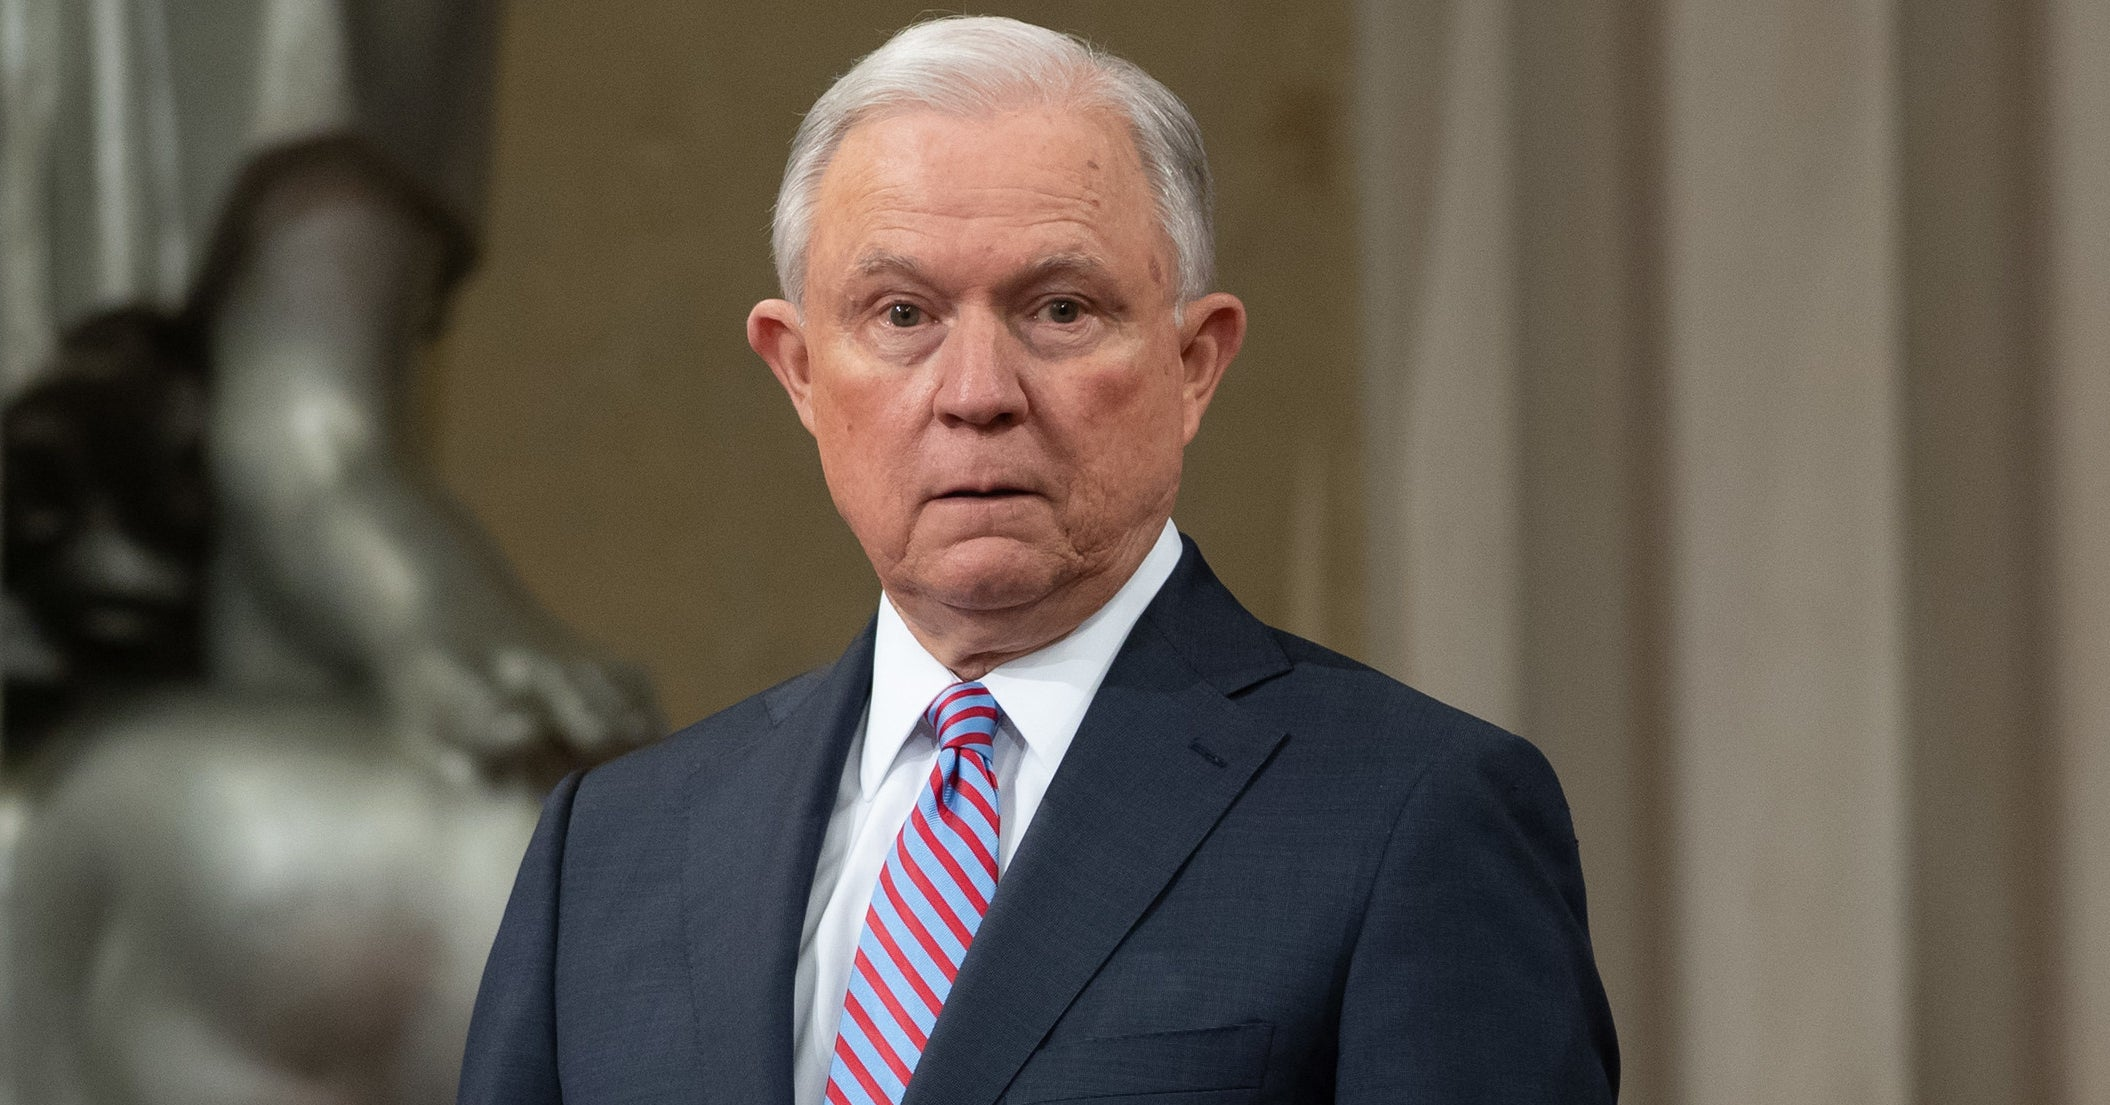 Jeff Sessions Wants His Senate Seat Back. He'll Have To Deal With Roy Moore, Two Major Opponents, And Trump To Get It.